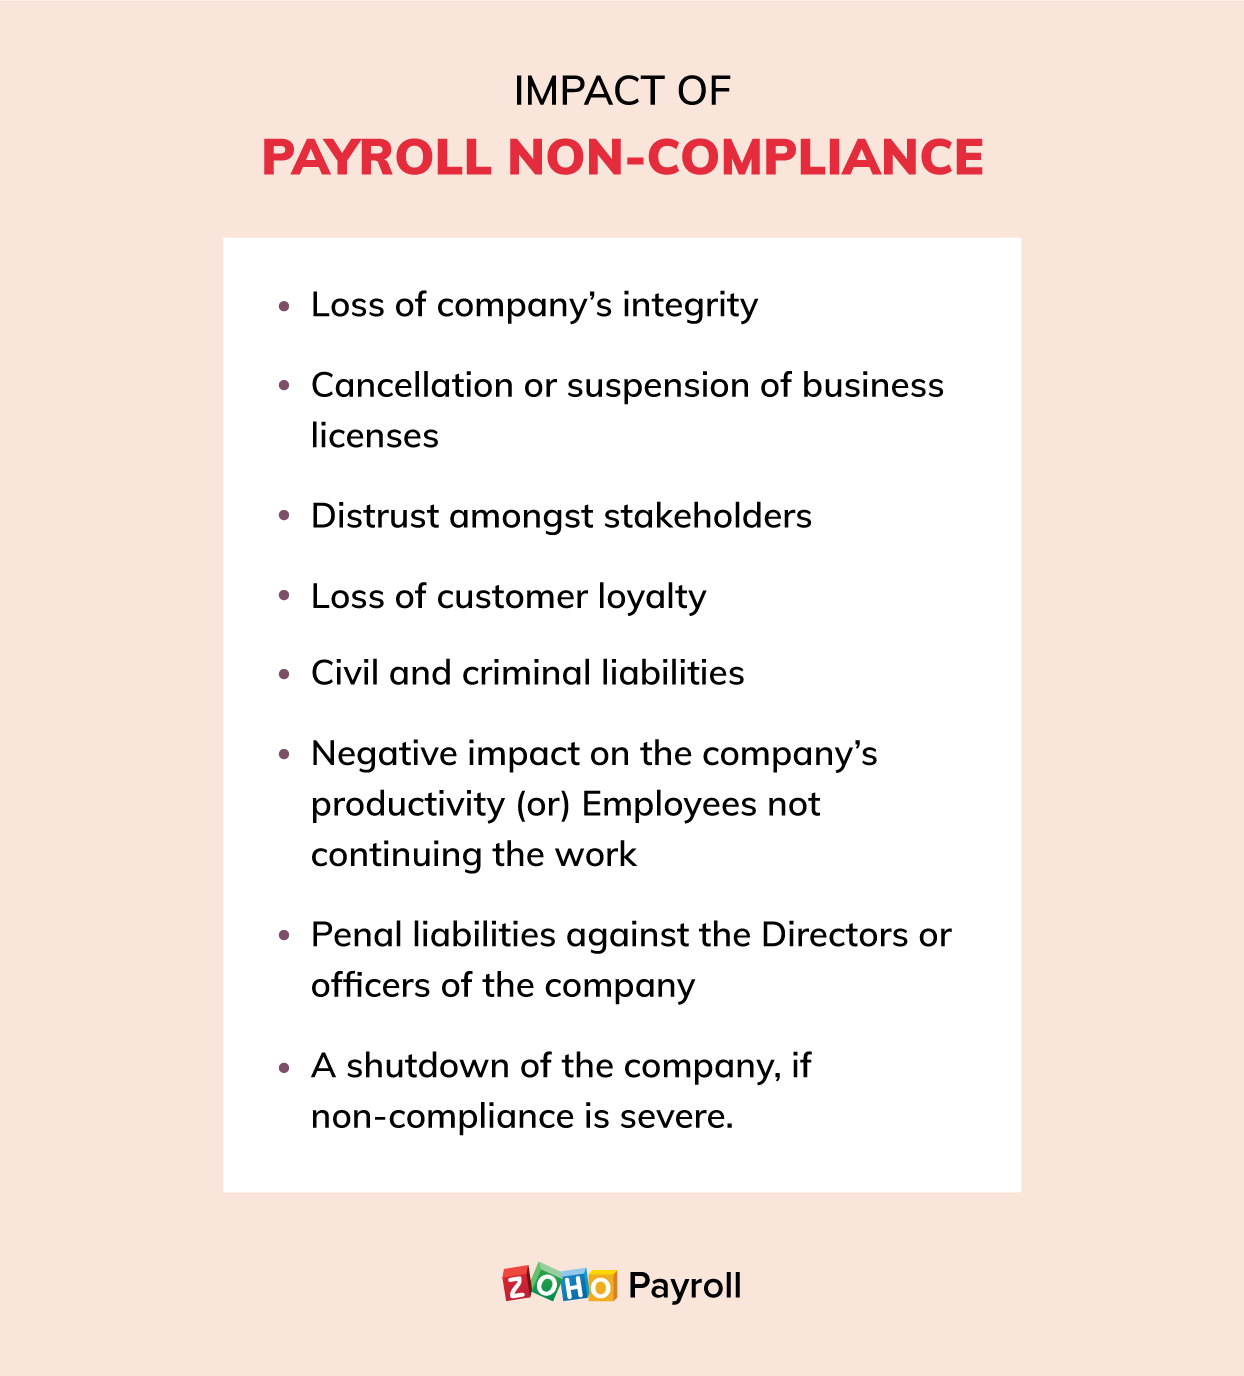 Payroll Statutory Non compliance: What happens when businesses are not compliant to statutory rules